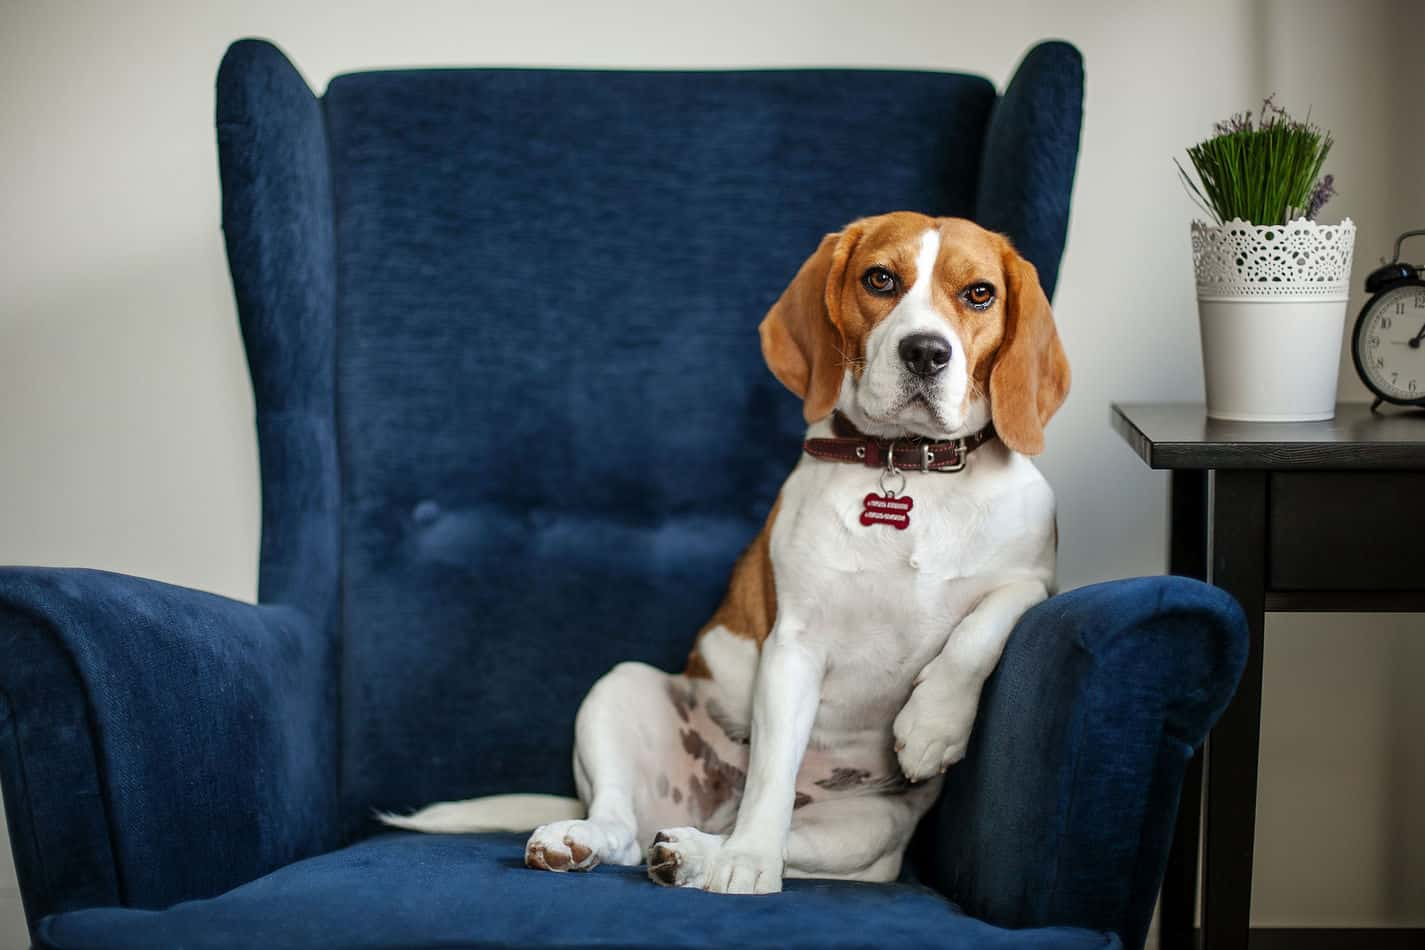 Beagles as Pets: Cost, Life Expectancy, and Temperament